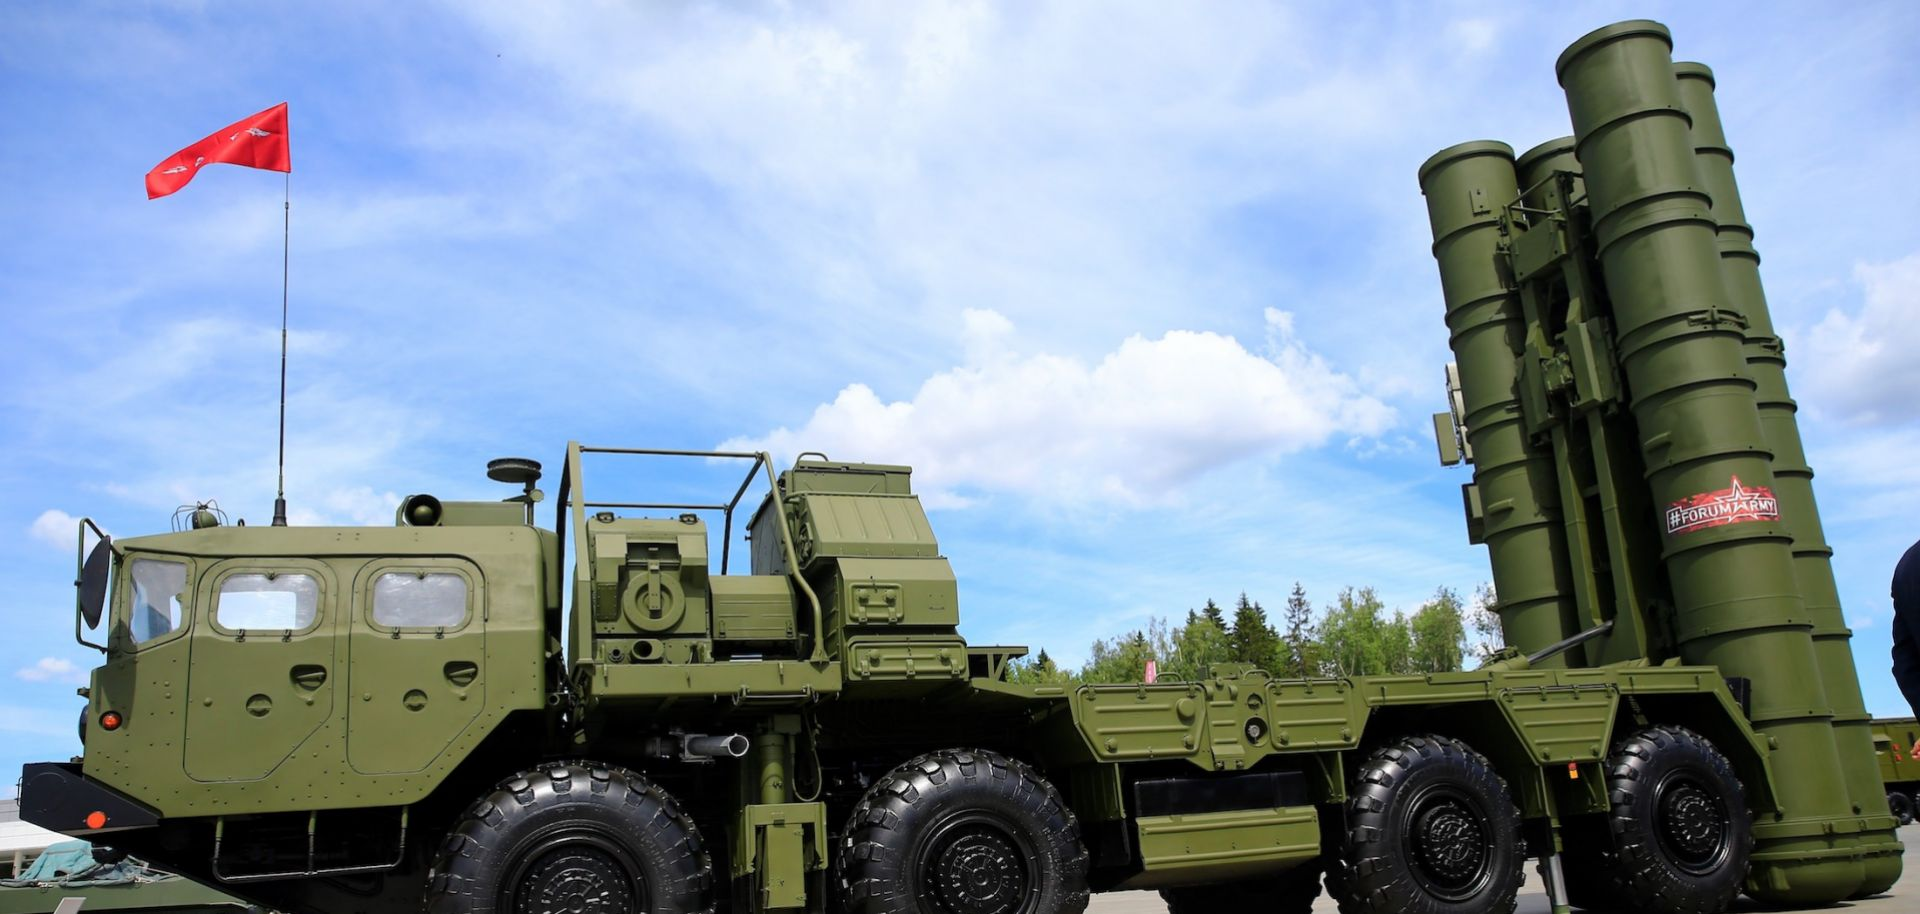 An S-400 surface-to-air missile launcher is seen in Moscow, Russia.